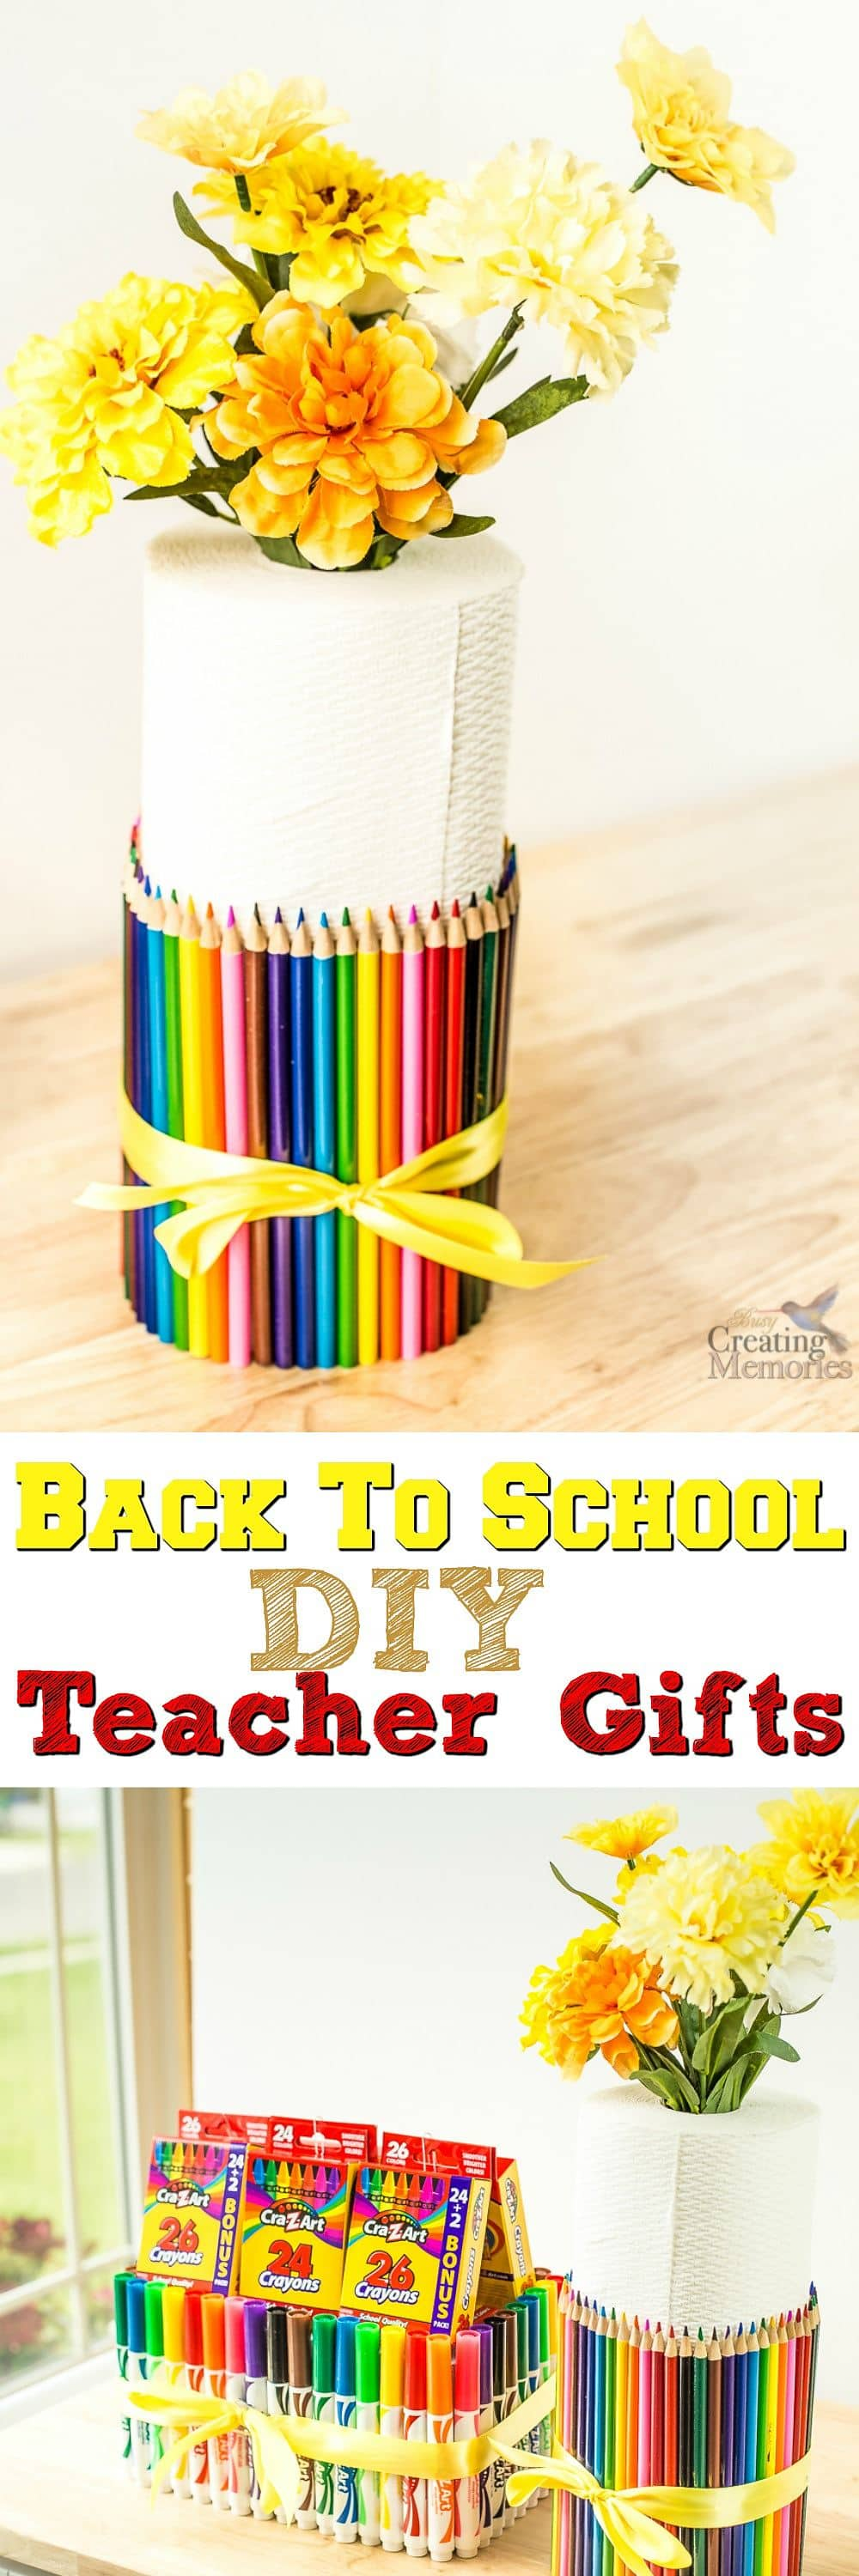 Create these easy Teacher Gifts to start our school year off right! Full of School Supplies that support the classroom and your child's education in a cute package. Plus earn Double Box Tops at the same time for your classroom!